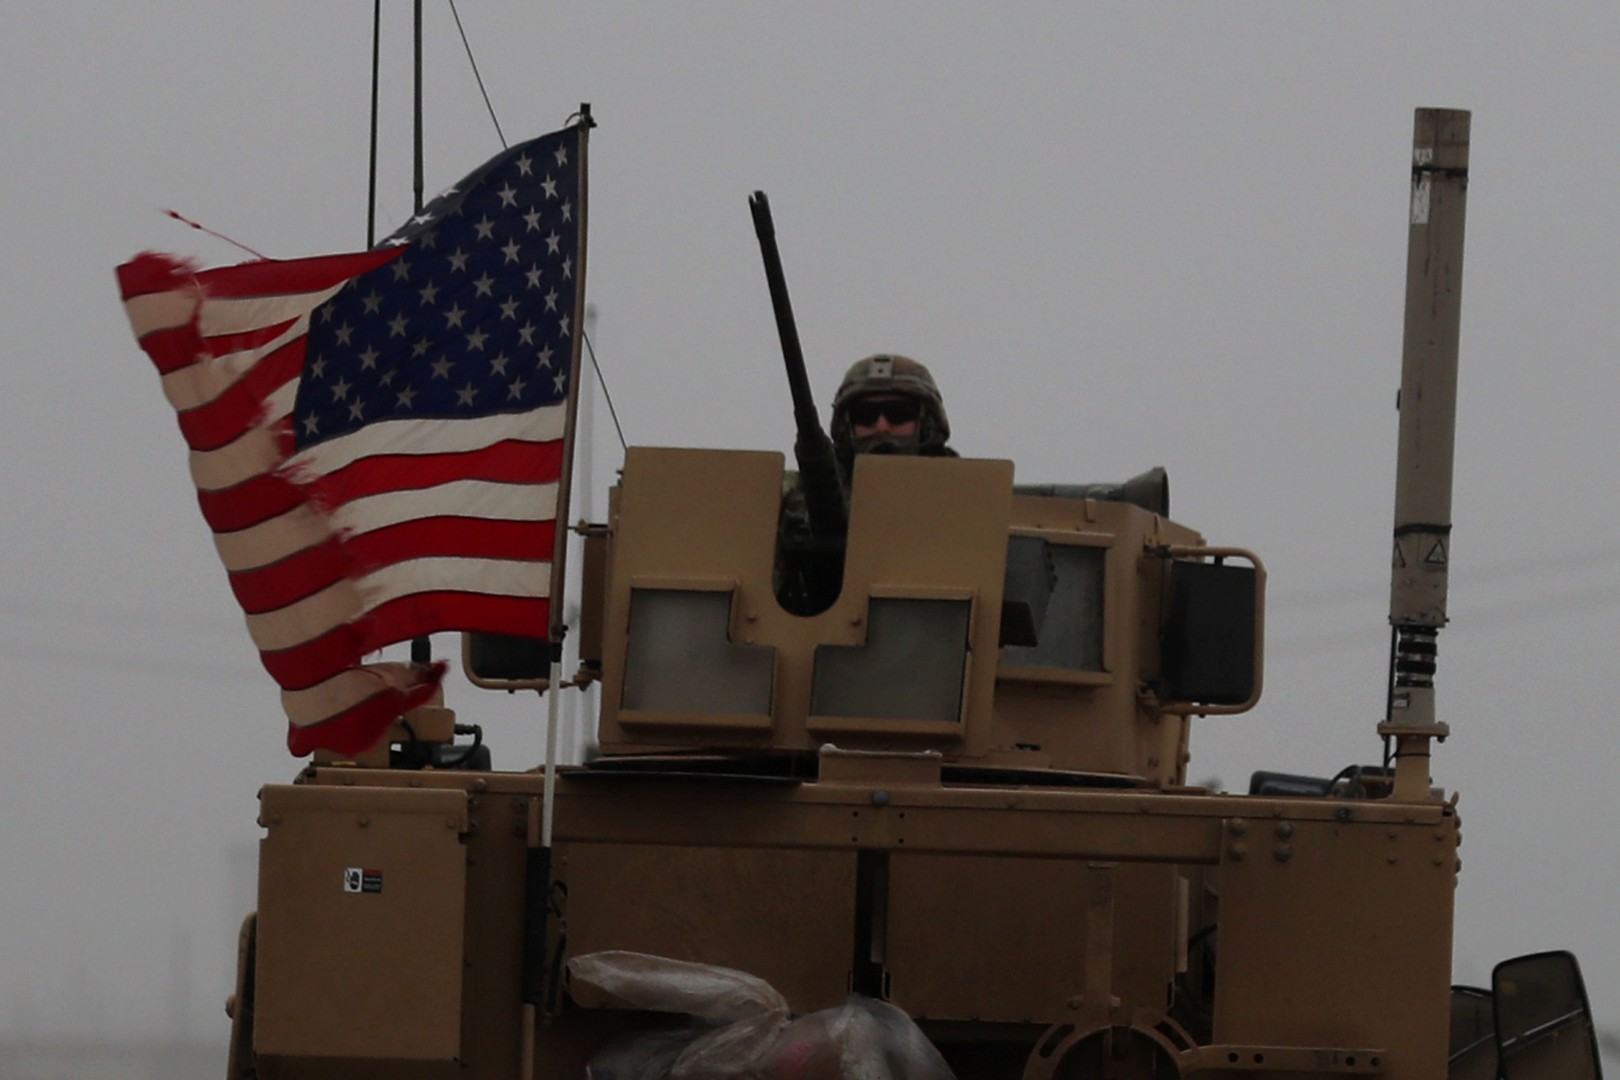 A picture taken on December 30, 2018, shows a US soldier riding an armoured personnel carrier as a line of US military vehicles patrol in Syria's northern city of Manbij. - President Donald Trump announced last week that US troops would depart from Syria, leaving Manbij residents dreading a long-threatened attack by Turkey. (Photo by Delil SOULEIMAN / AFP)